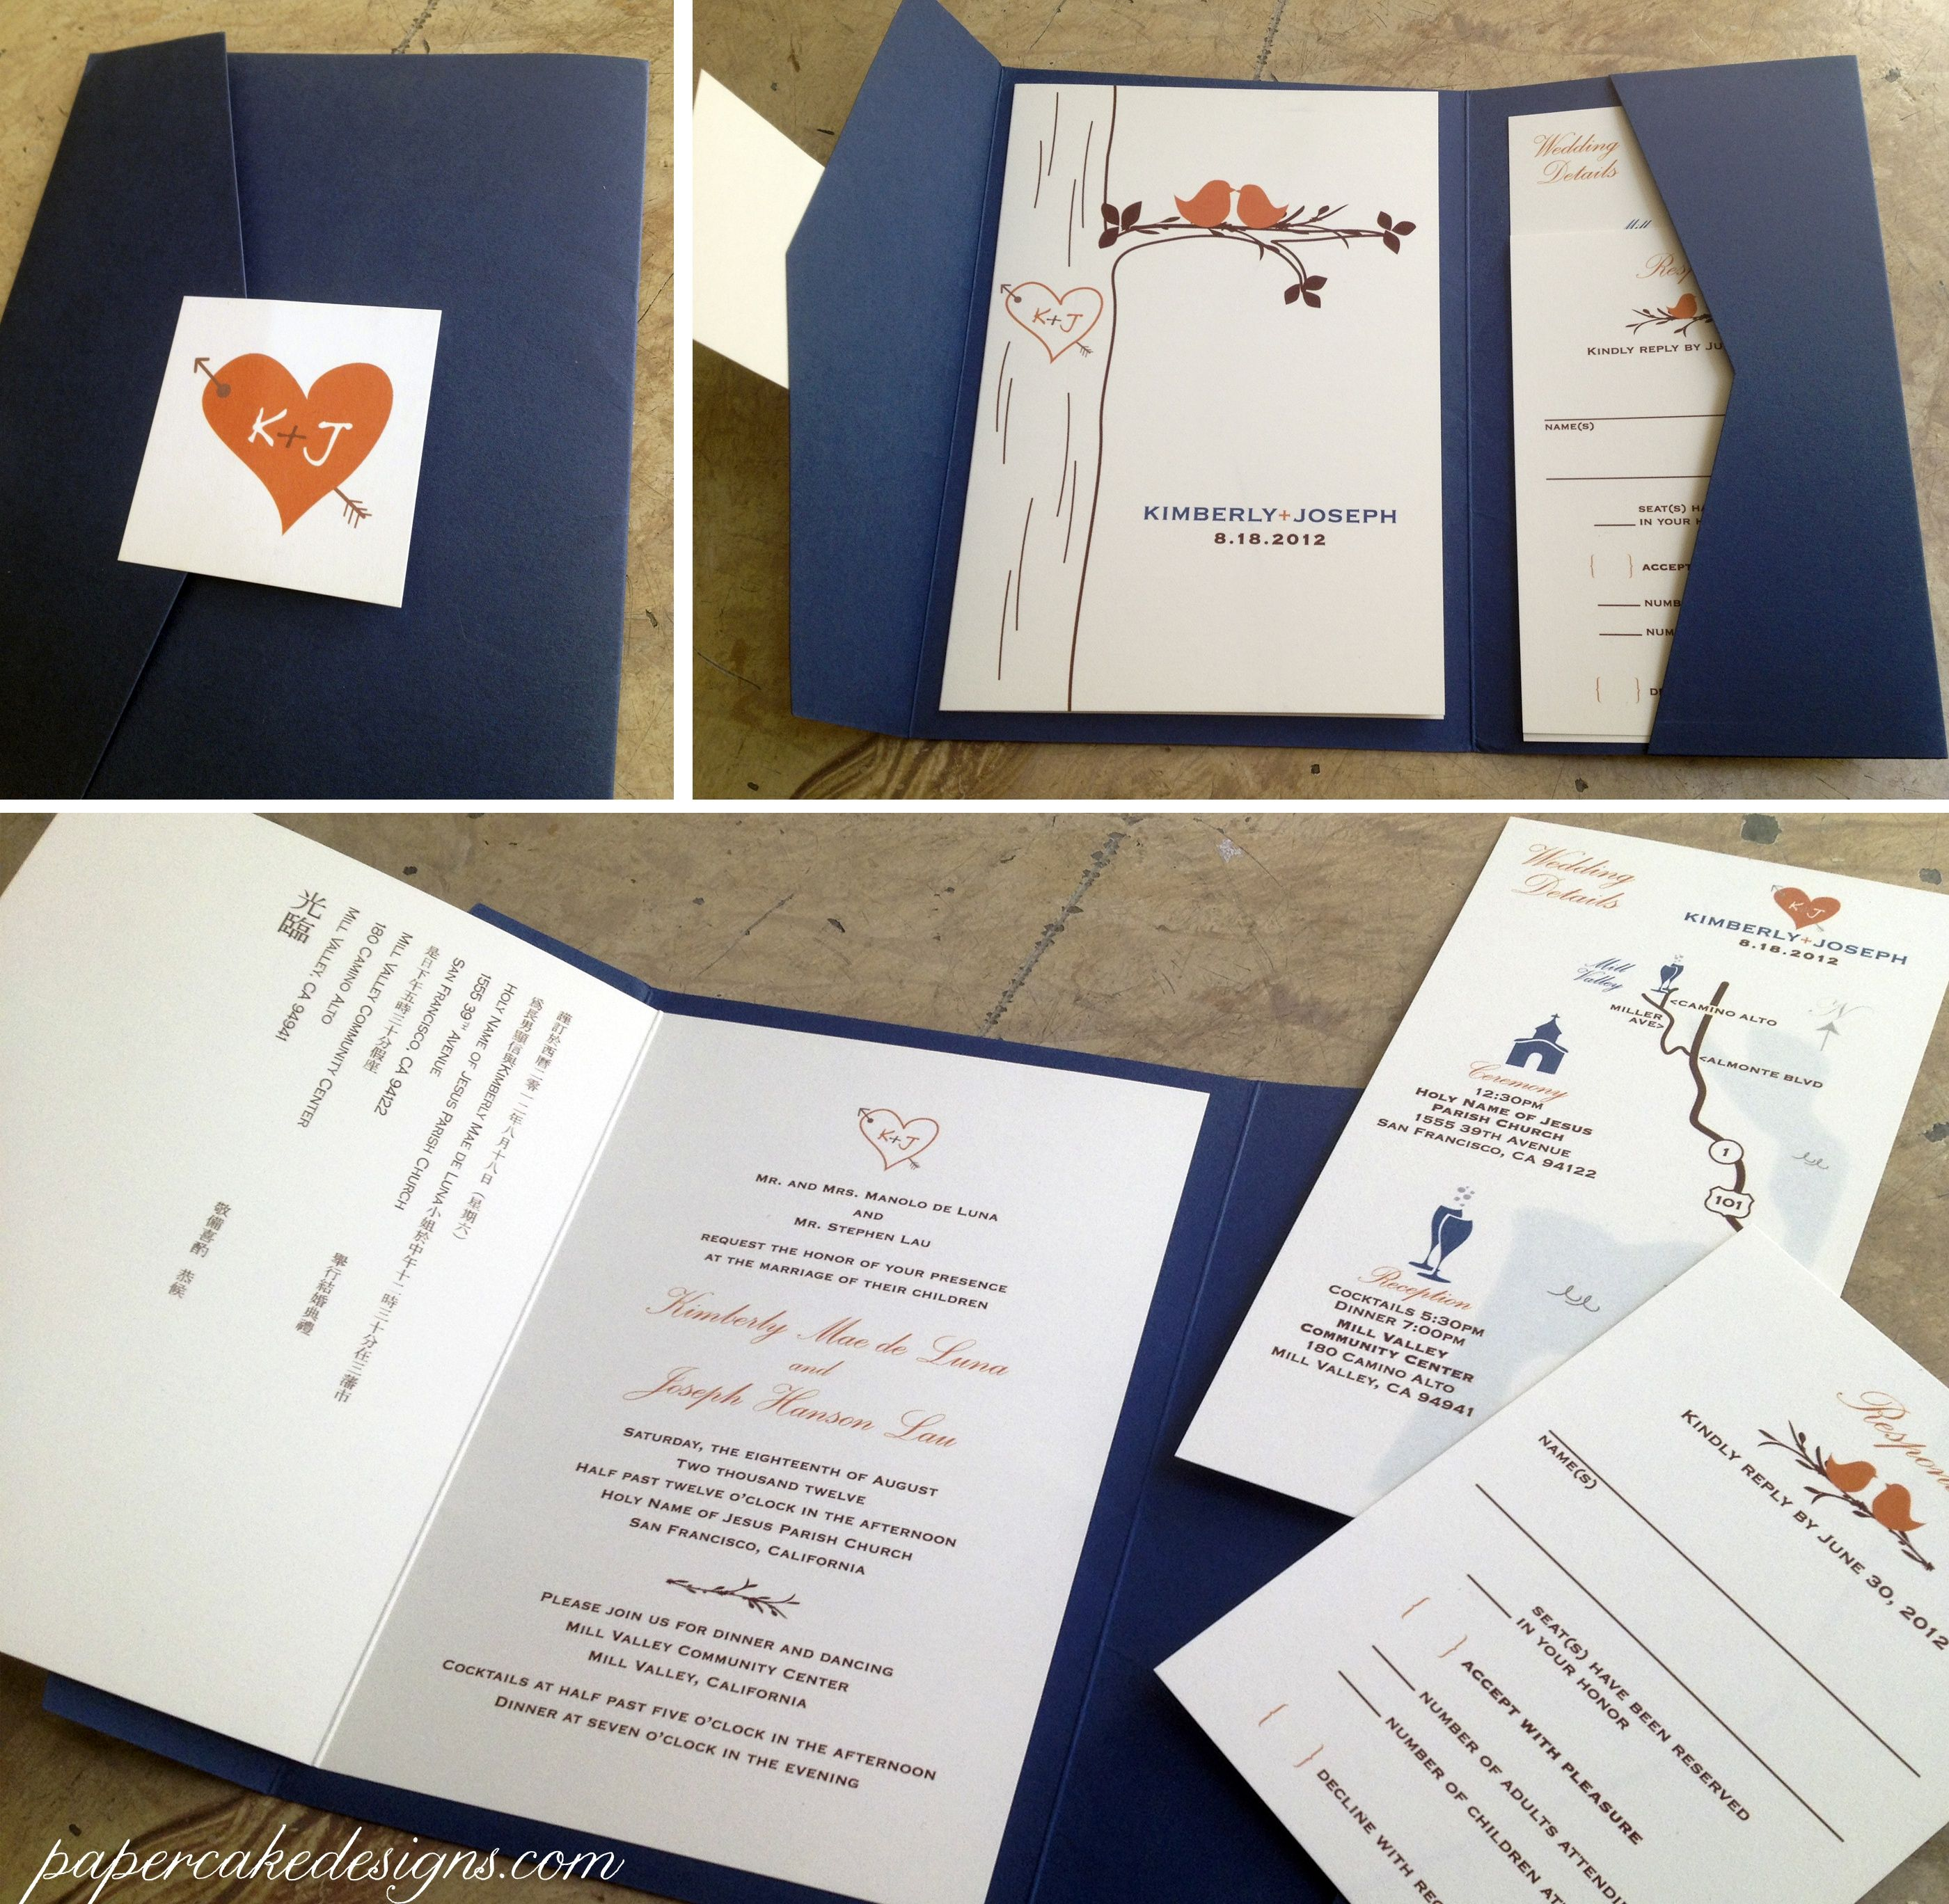 Pin by Design Listicle on Product | Pinterest | Wedding stationary